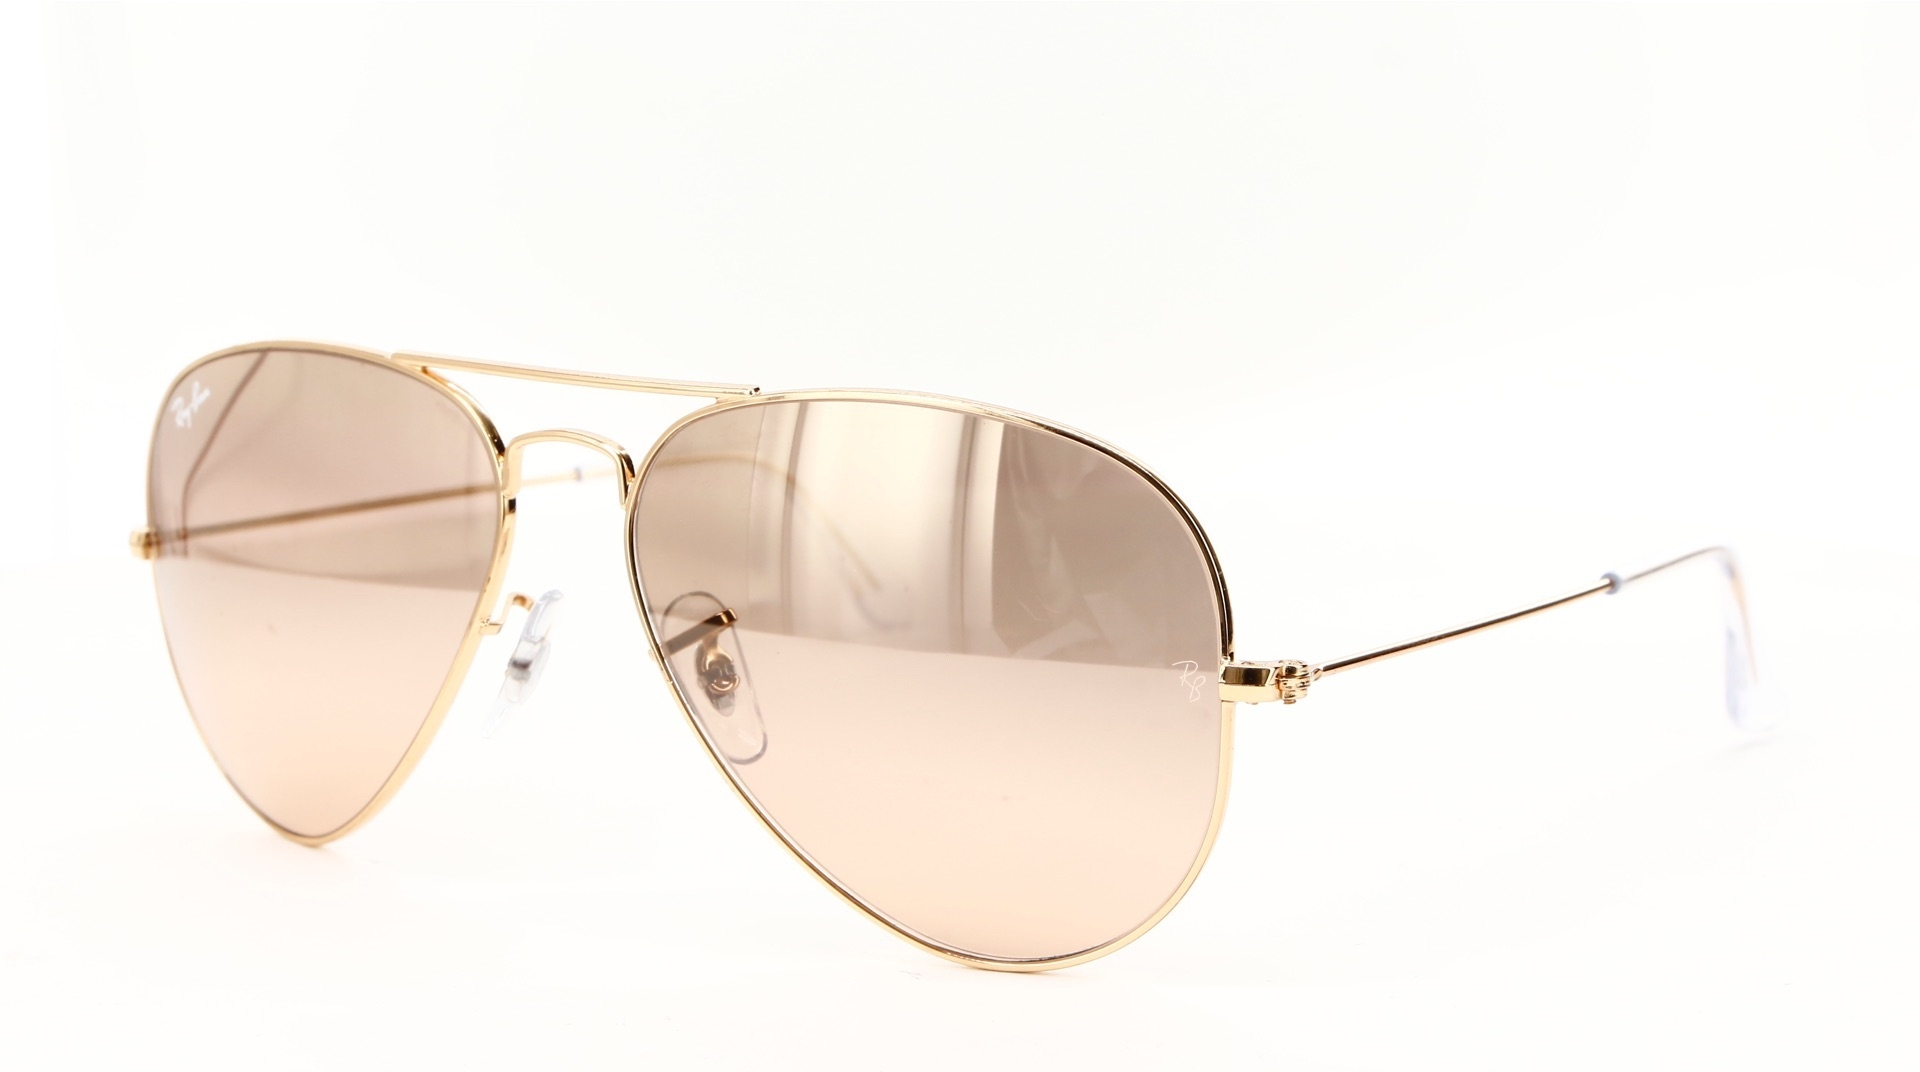 Ray-Ban - ref: 56813